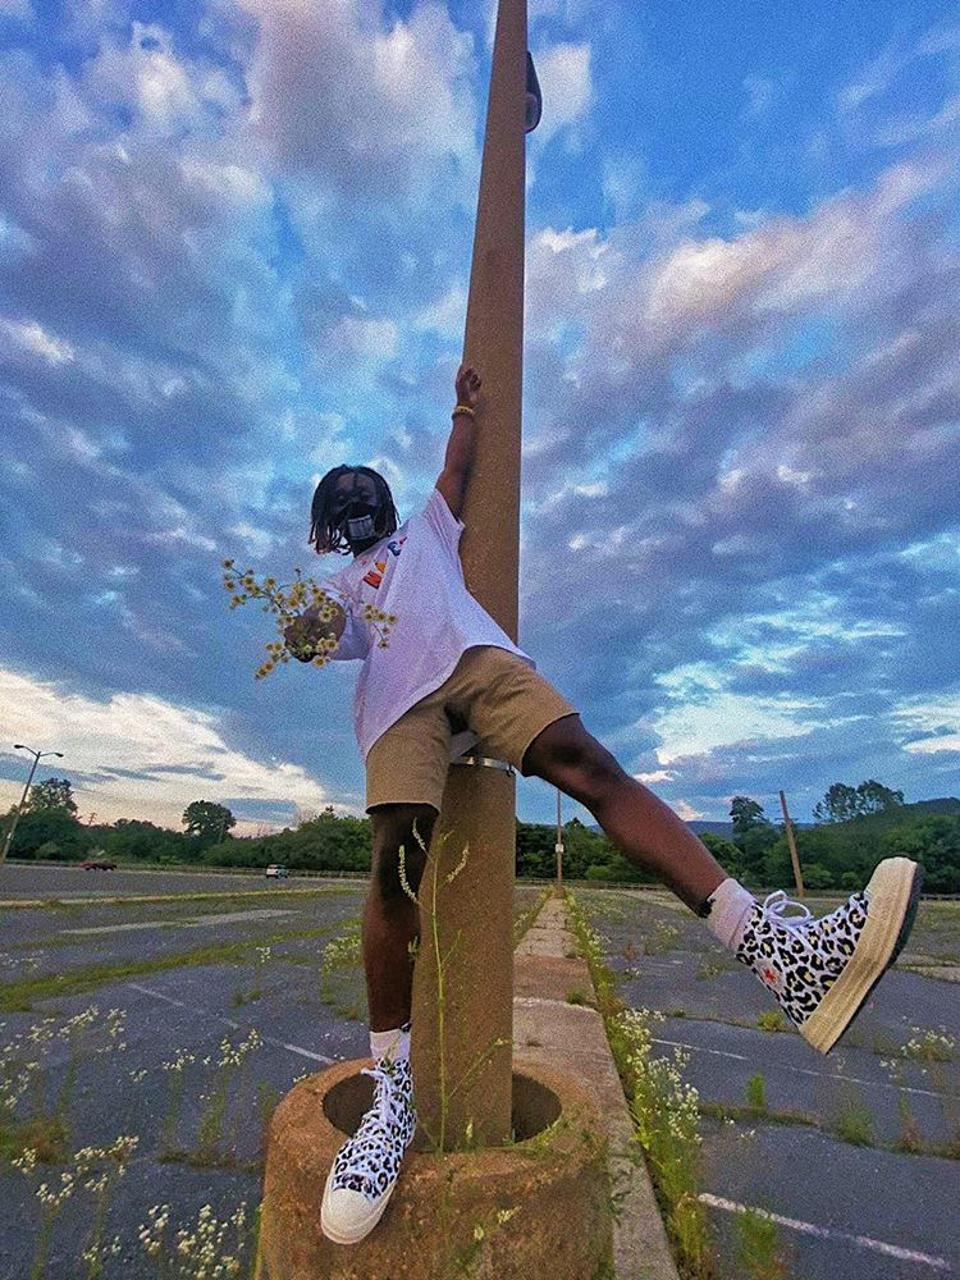 Celebrity Beauty: A younger Dark man playing on a pole.